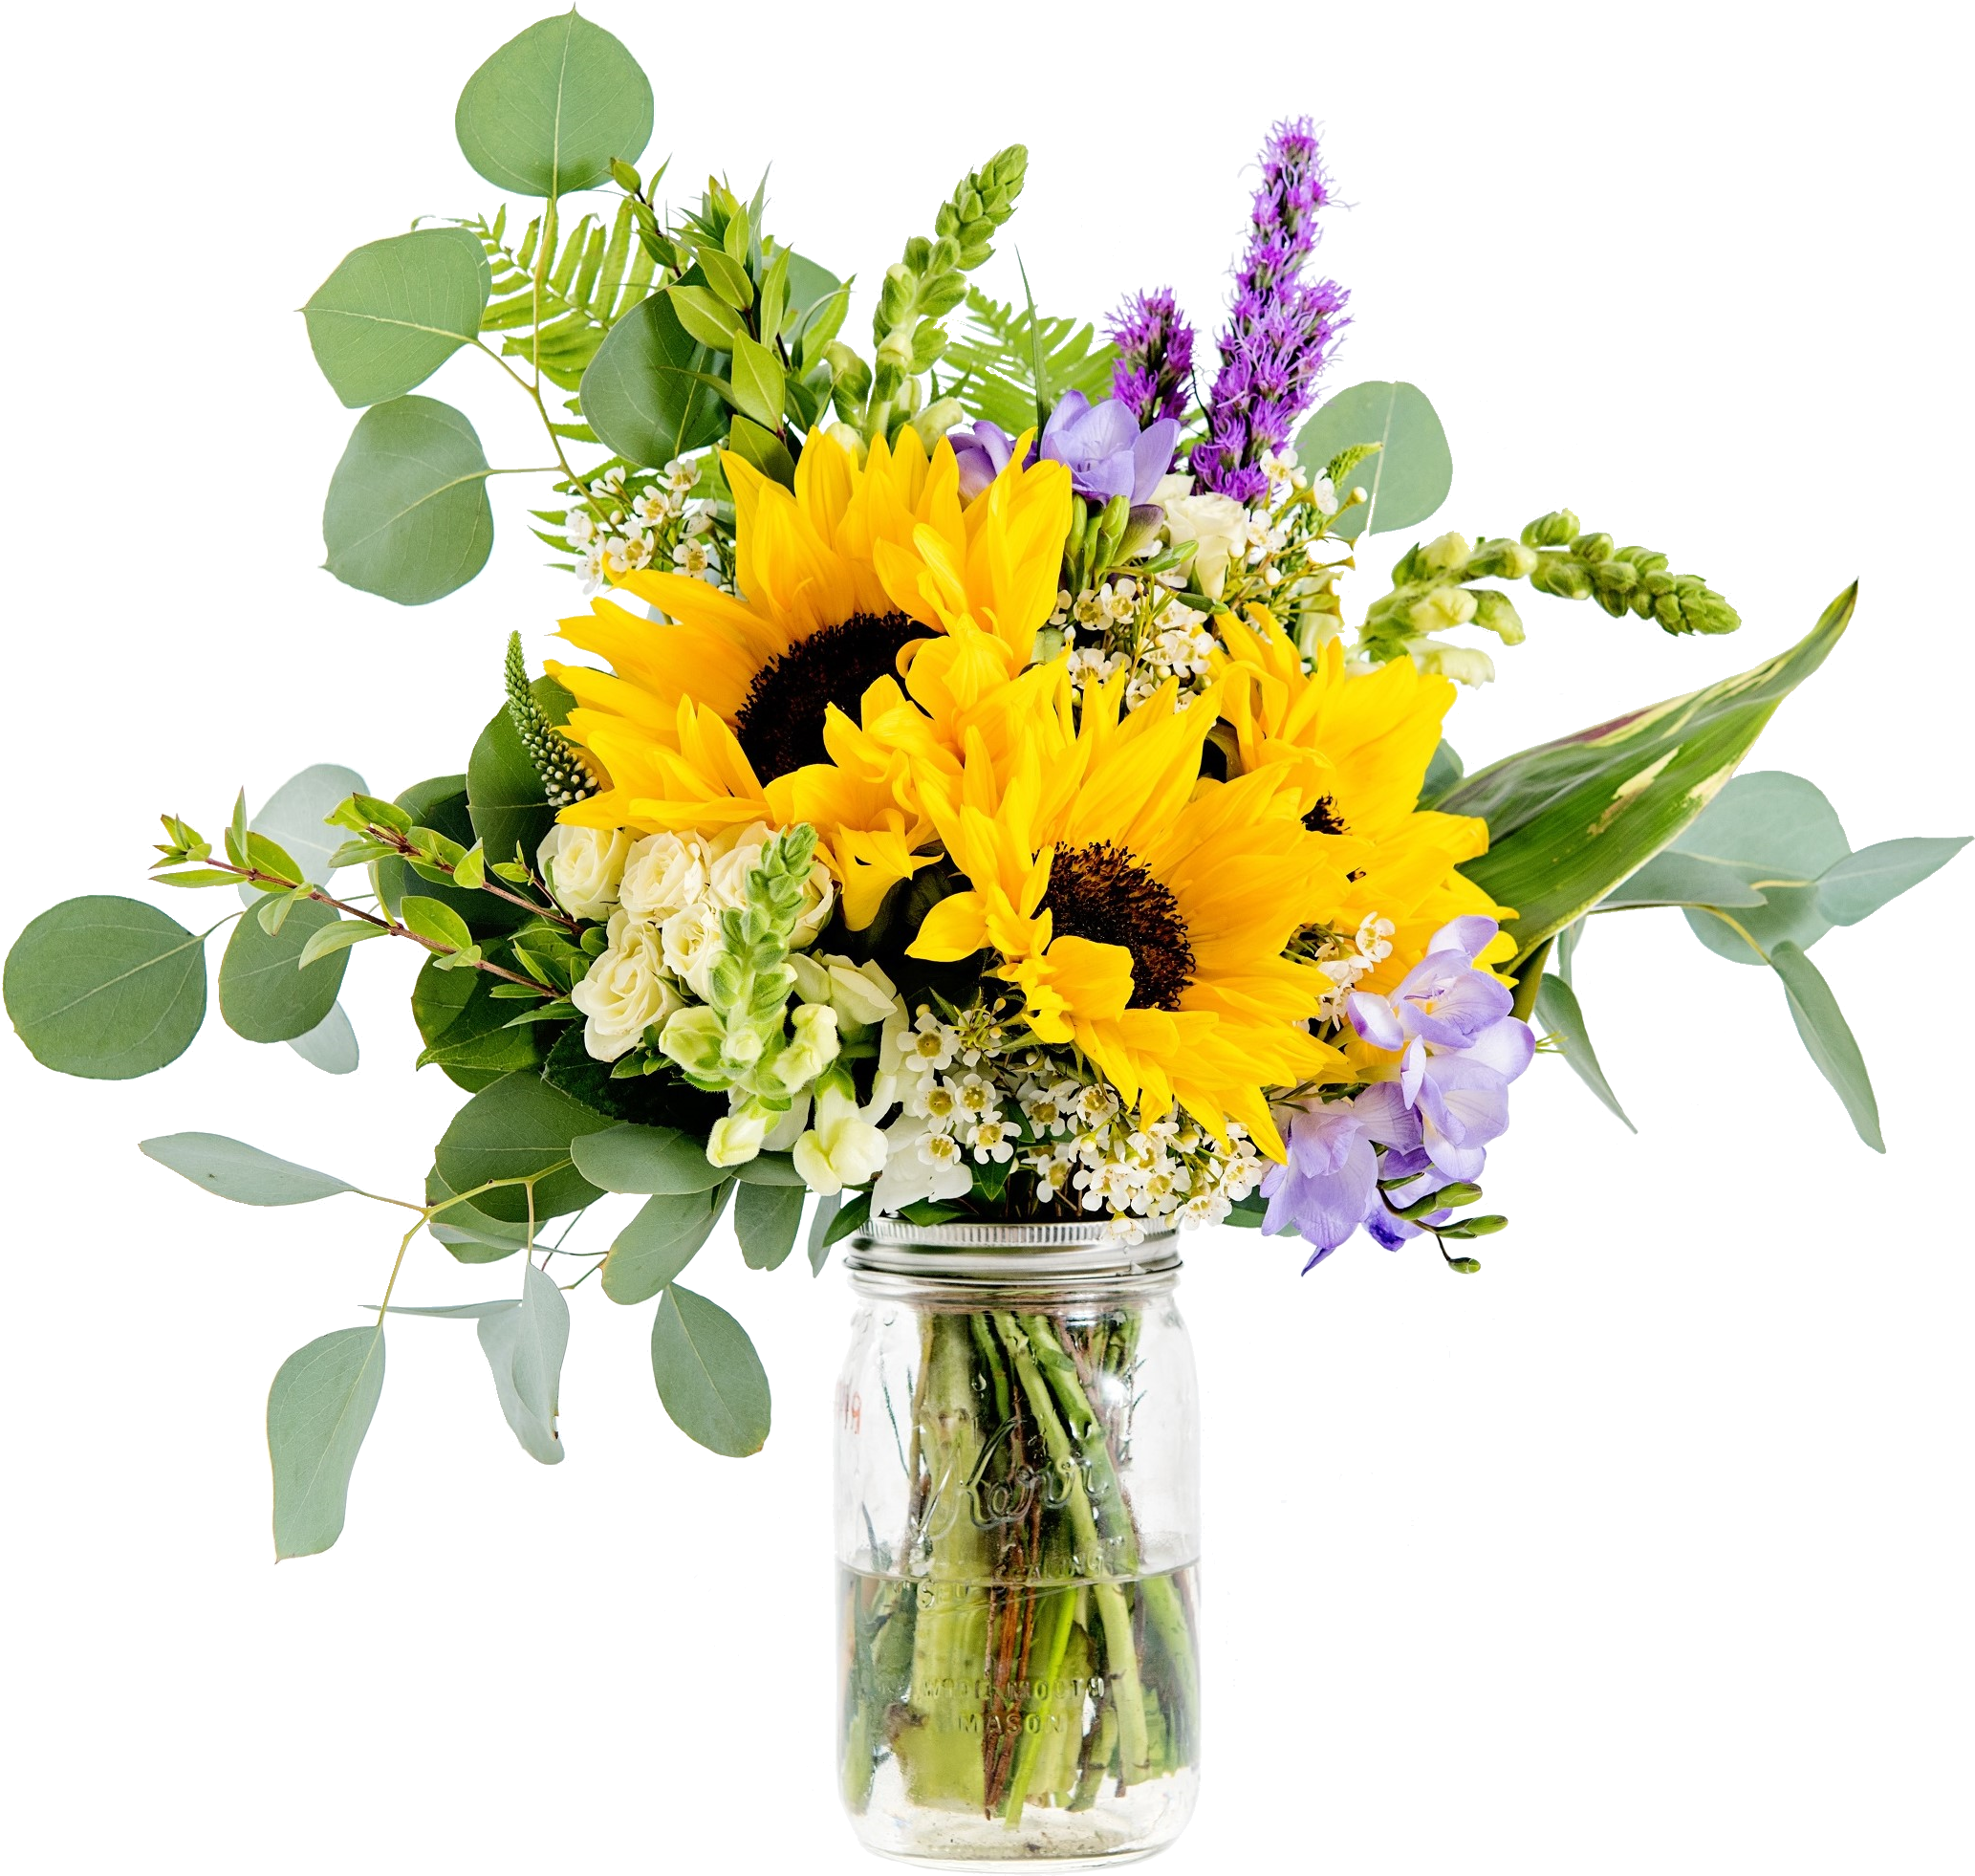 Download This Little Bunch Includes Sunflowers Eucalyptus Bouquet Full Size Png Image Pngkit